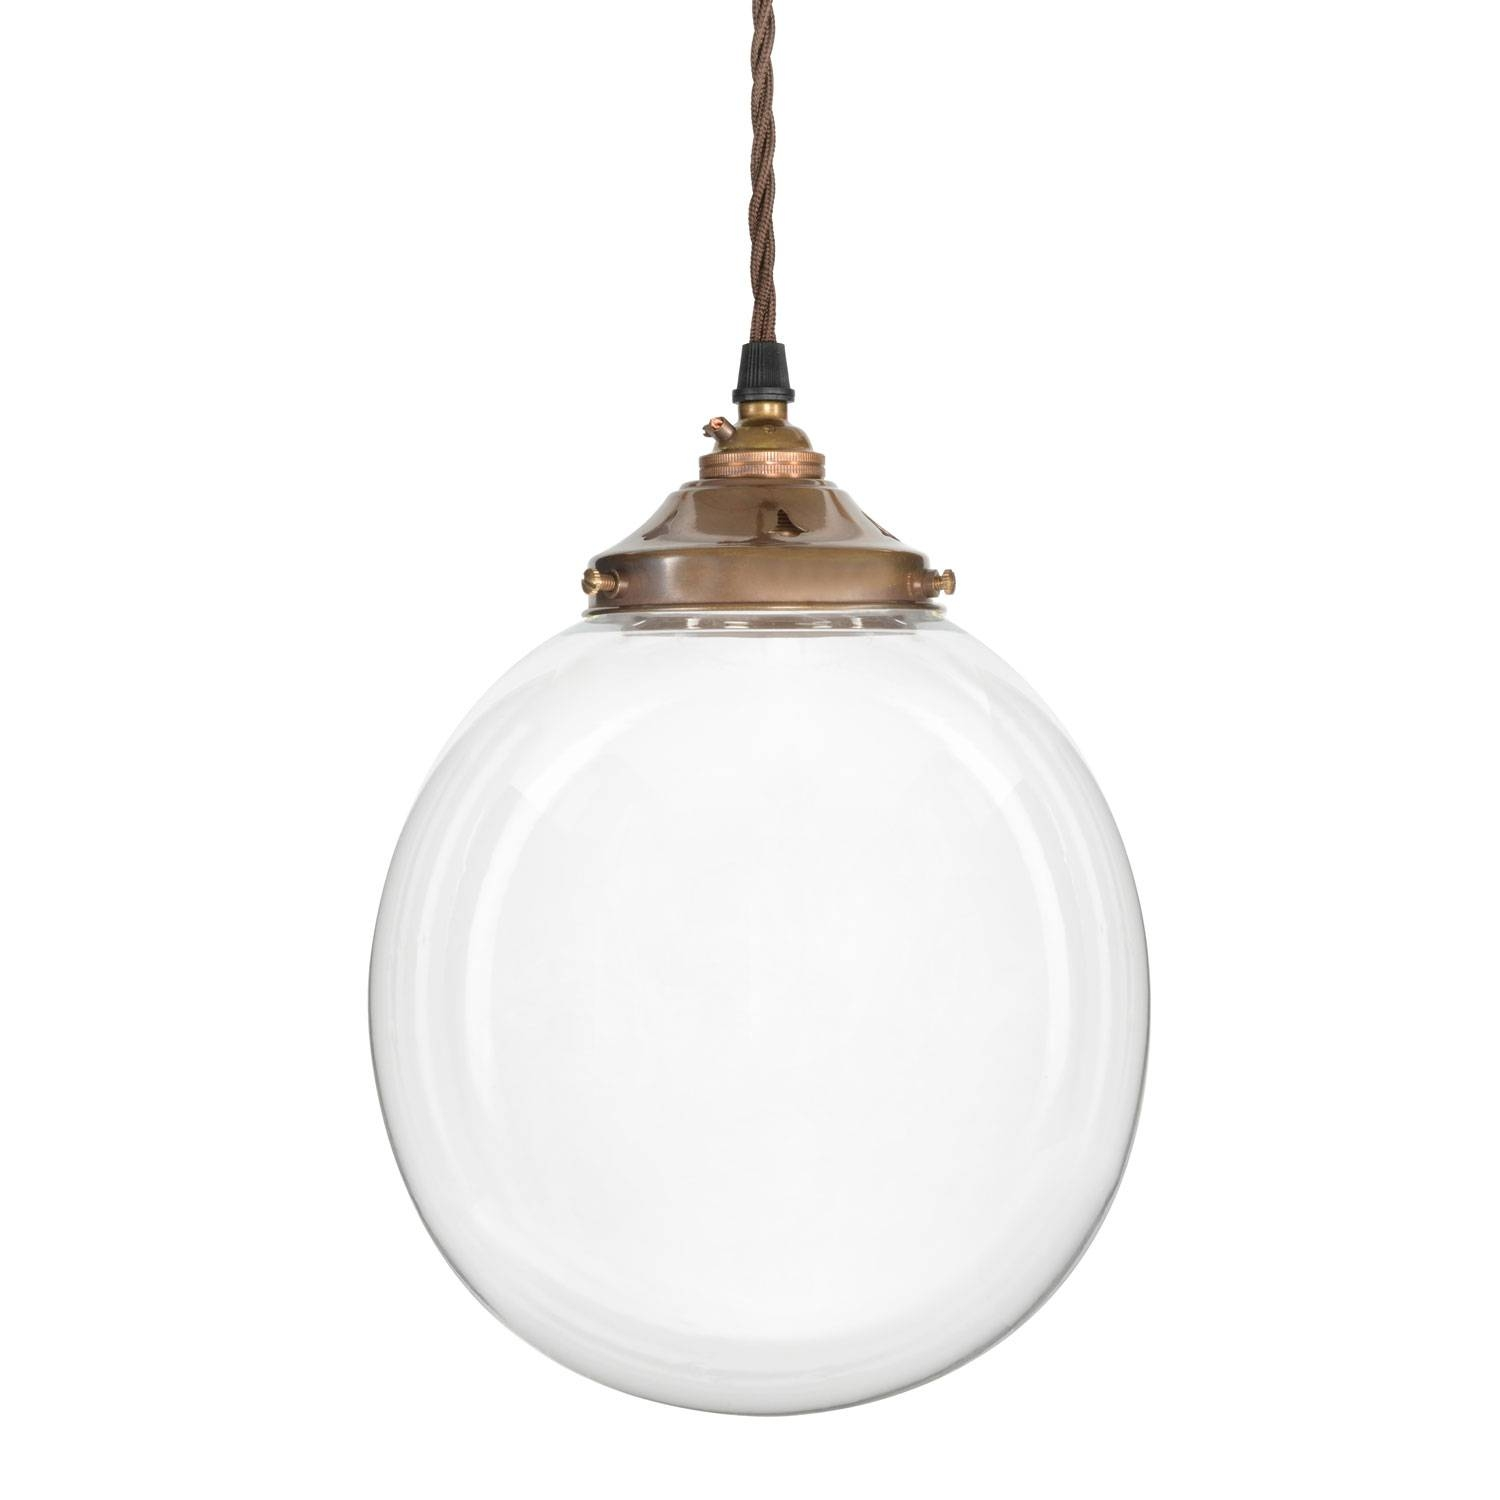 Glass Ball Pendant Light - Baby-Exit with Glass Sphere Pendant Lights (Image 6 of 15)